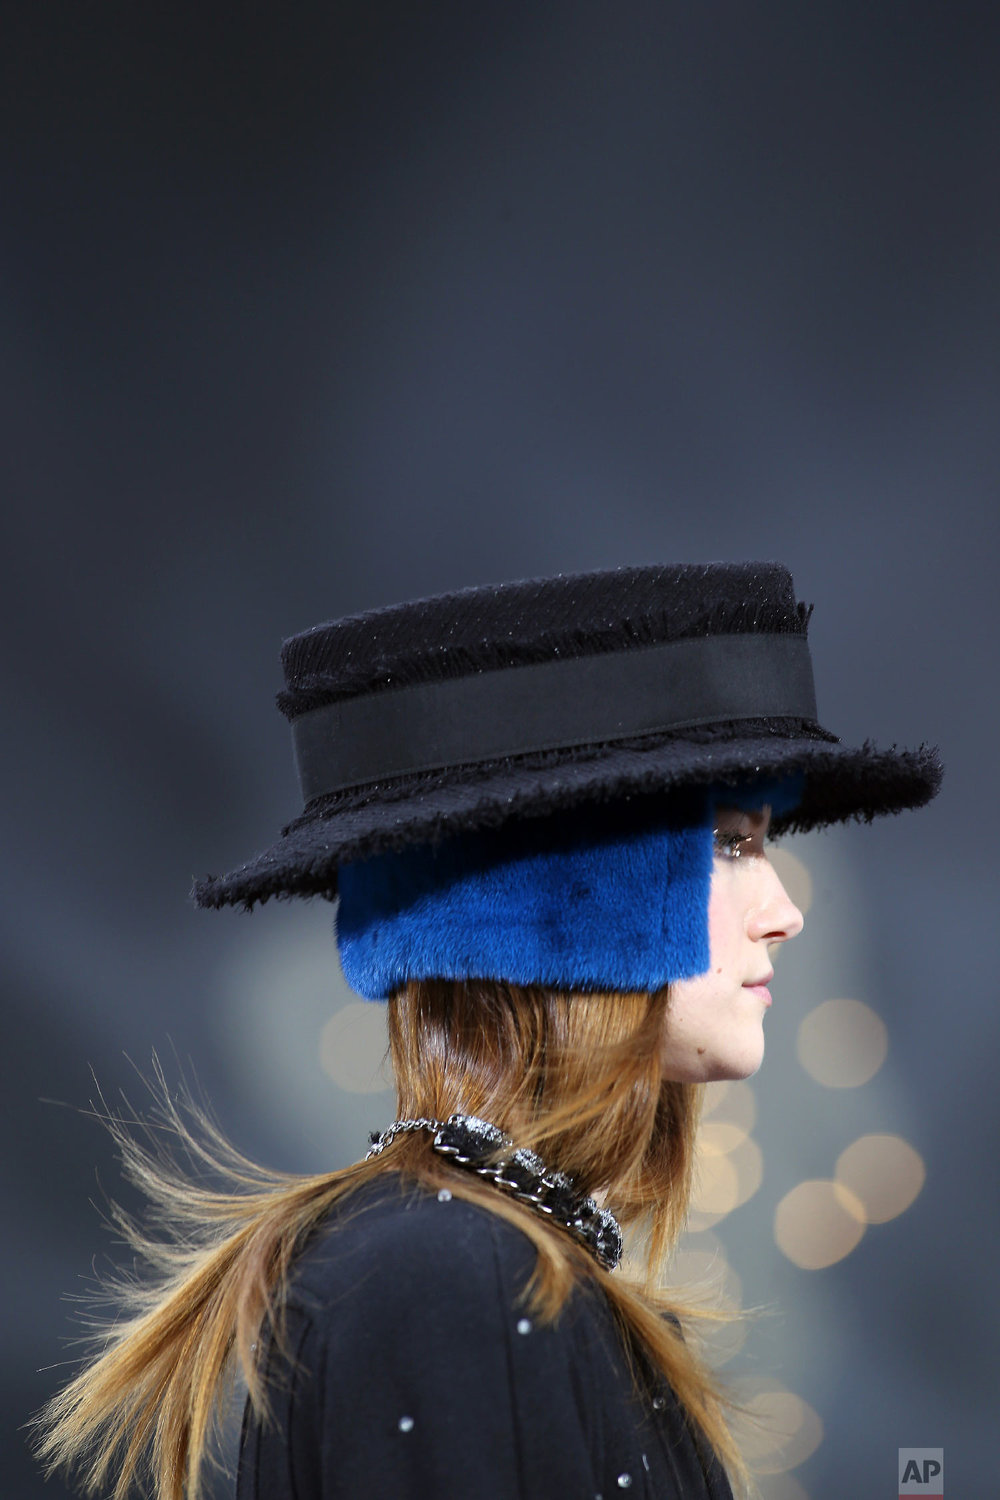 A model wears a creation by Lagerfeld in Paris, March, 5, 2013. (AP Photo/Thibault Camus)